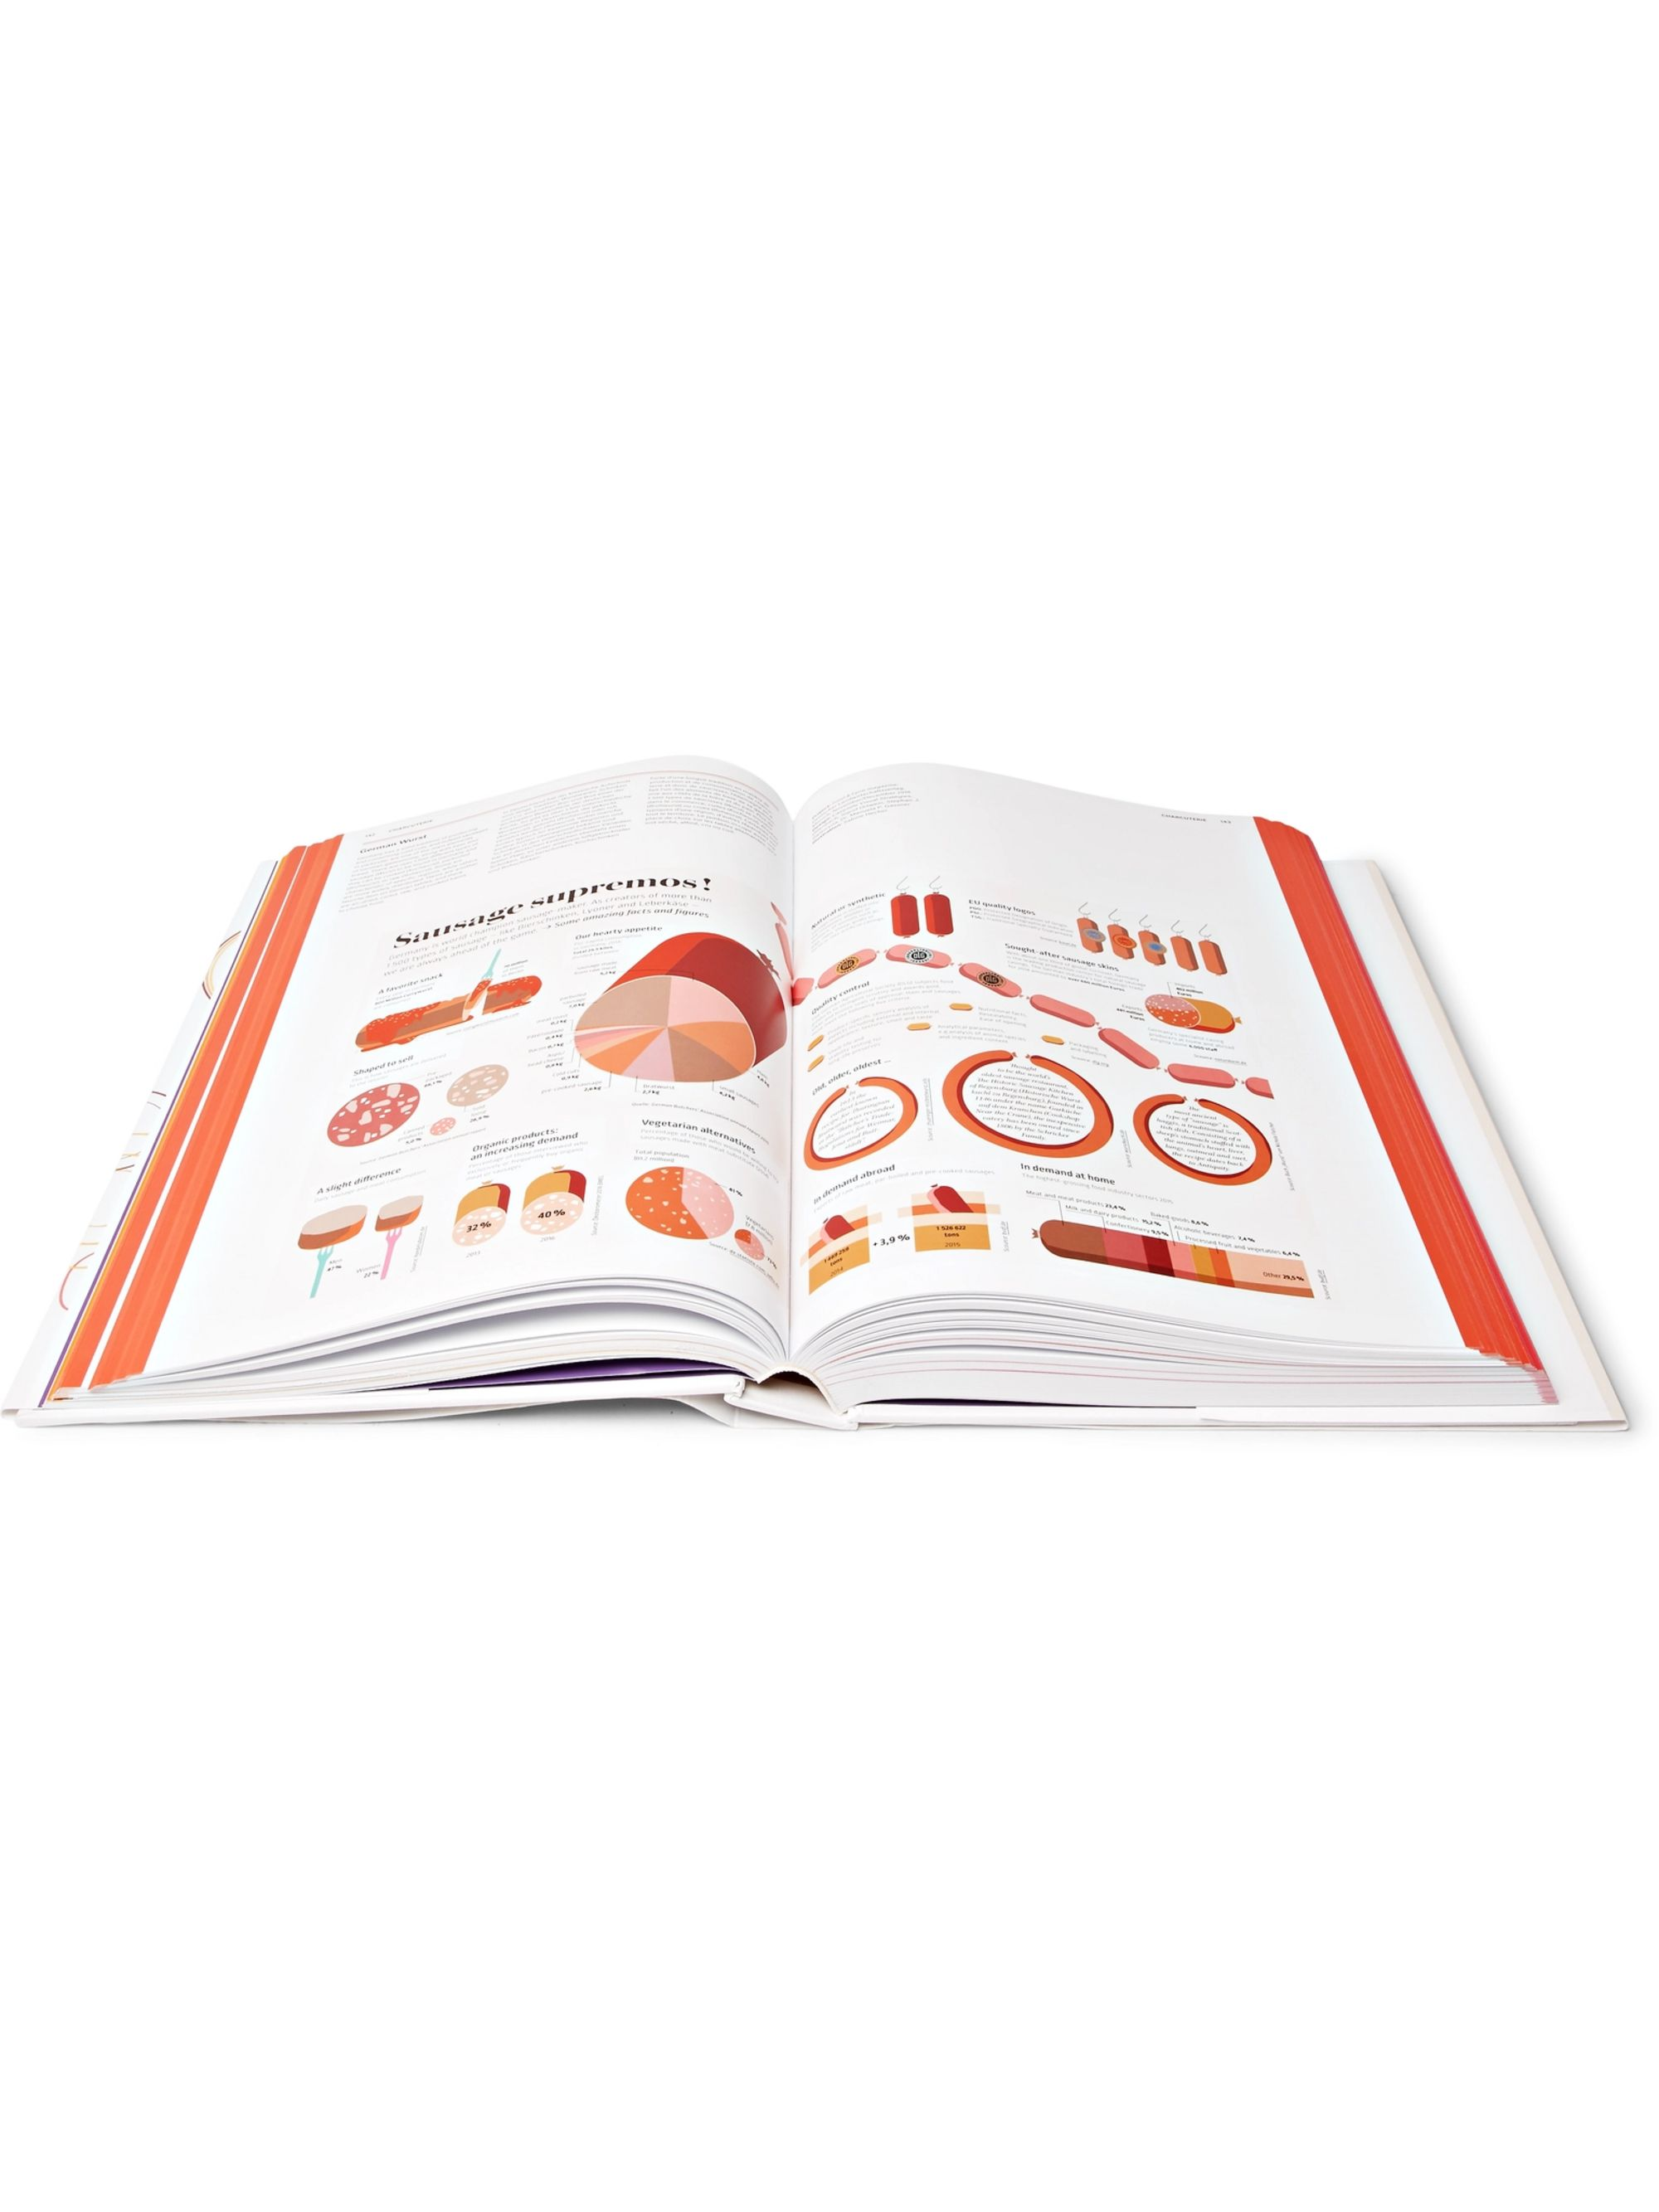 Taschen Food & Drink Infographics. A Visual Guide to Culinary Pleasures Hardcover Book